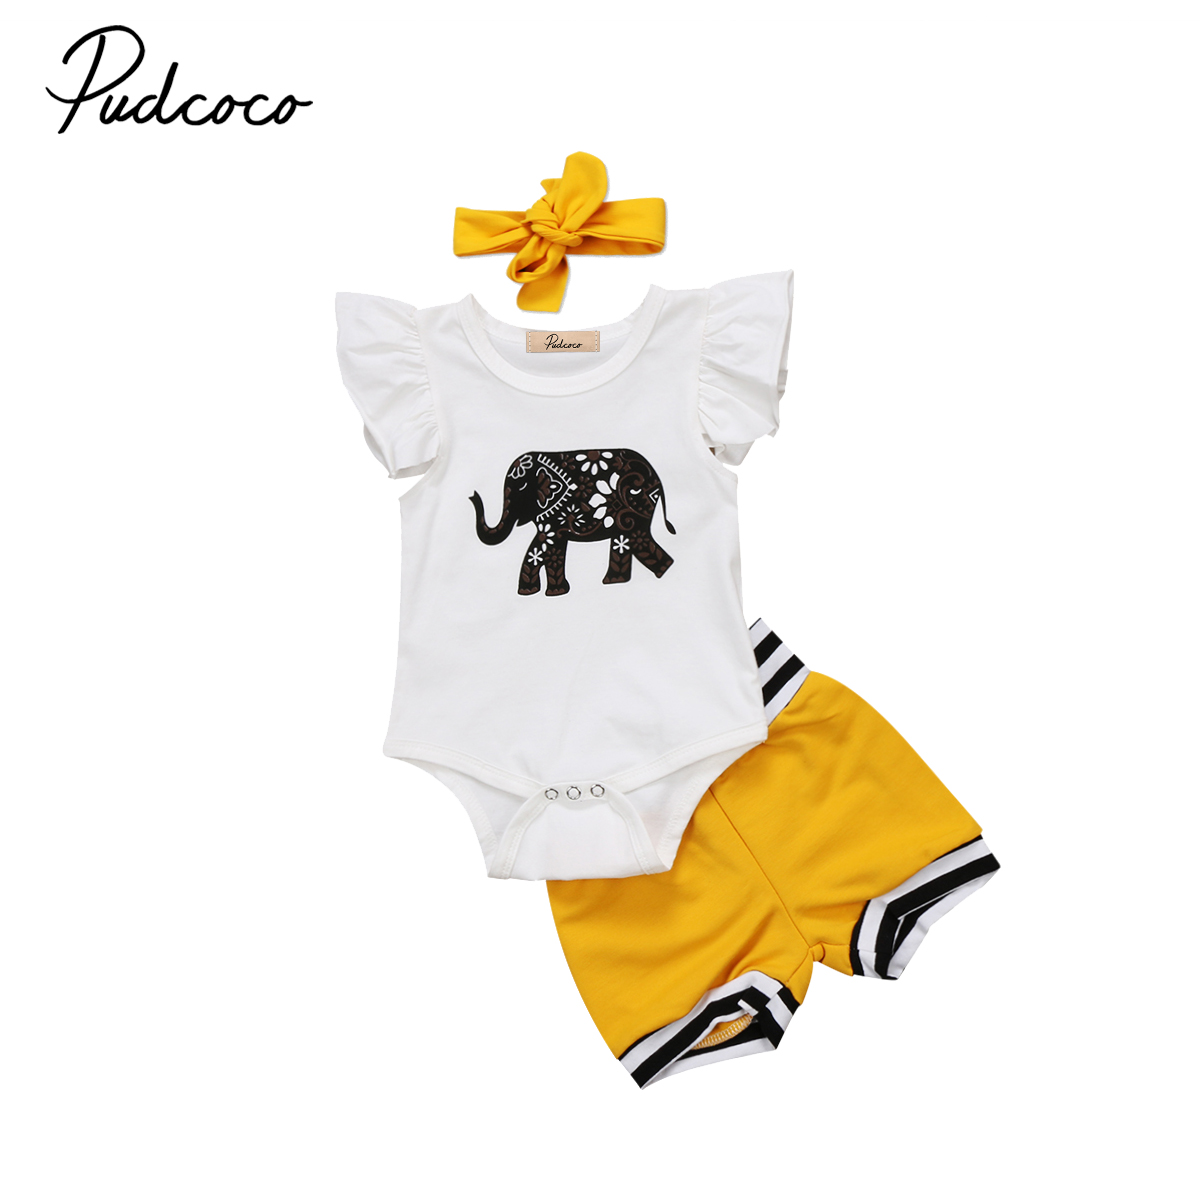 Pudcoco Summer Newborn Baby Girls Clothes Sleeveless Tops Ruffle Romper Bodysuit Shorts Bottoms Cotton Outfit Set 3pcs 3pcs mini mermaid newborn baby girl clothes 2017 summer short sleeve cotton romper bodysuit sea maid bottom outfit clothing set